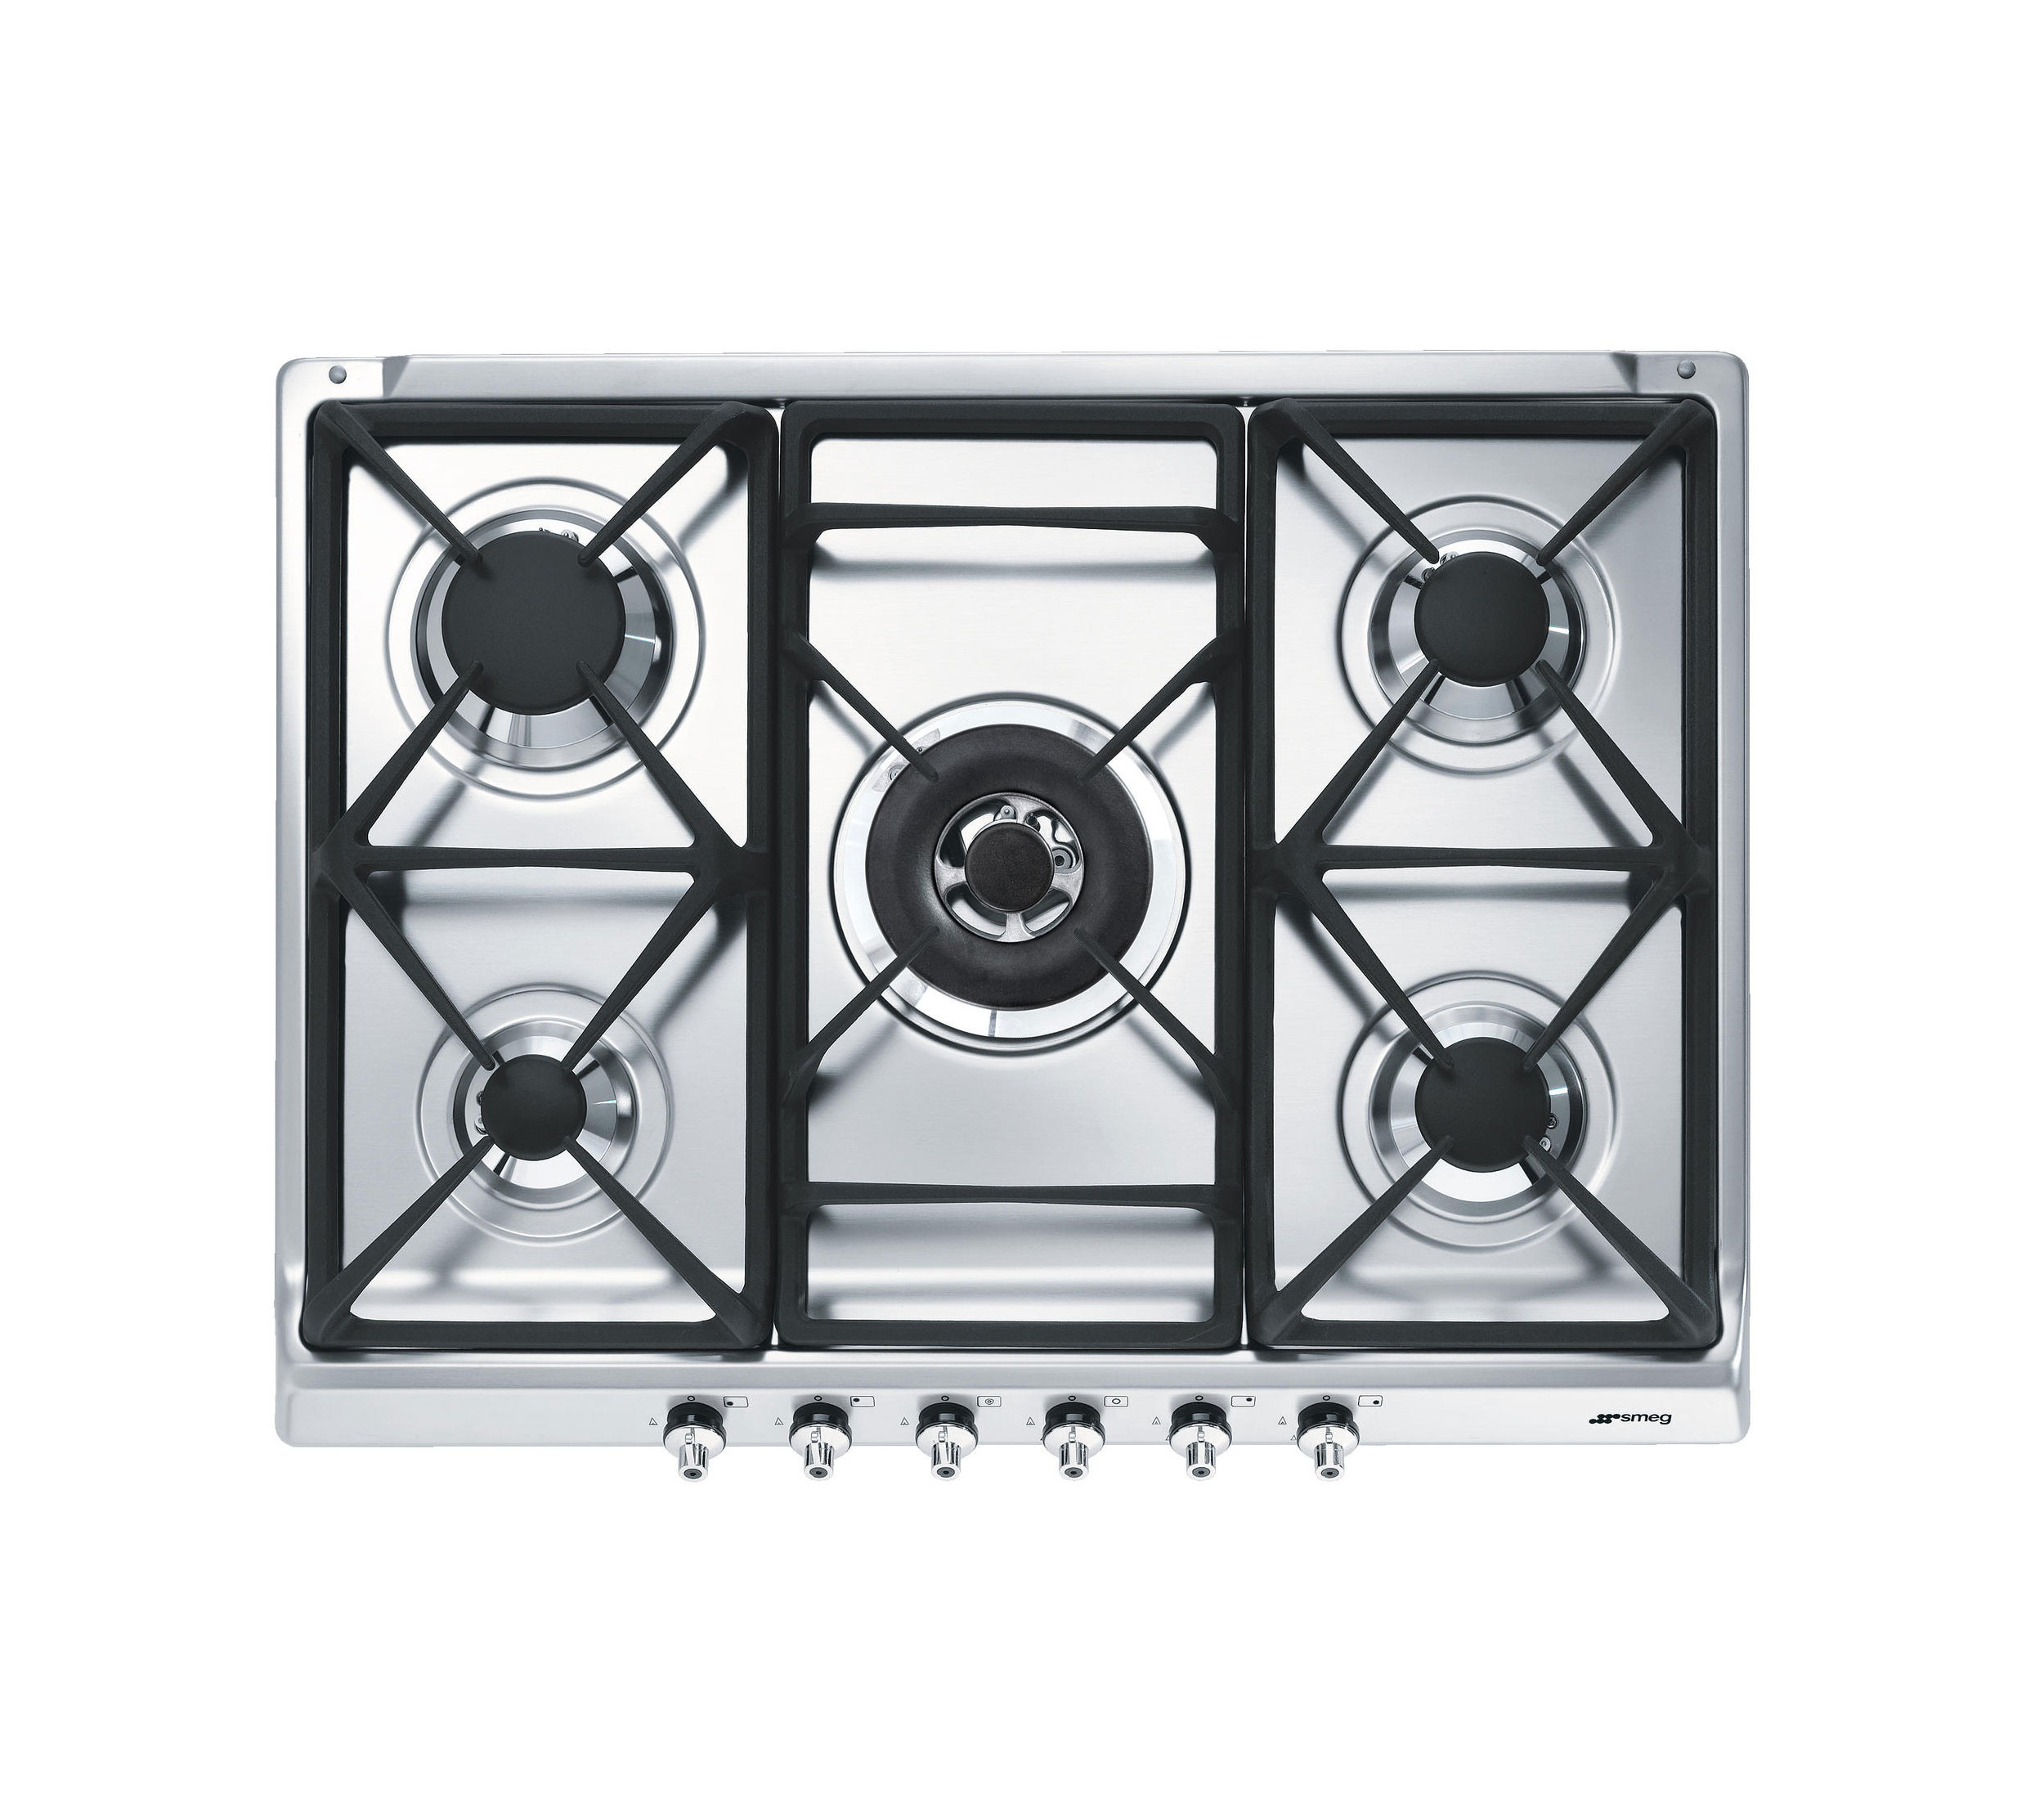 Smeg Classic 70 Stainless Steel Gas Hob